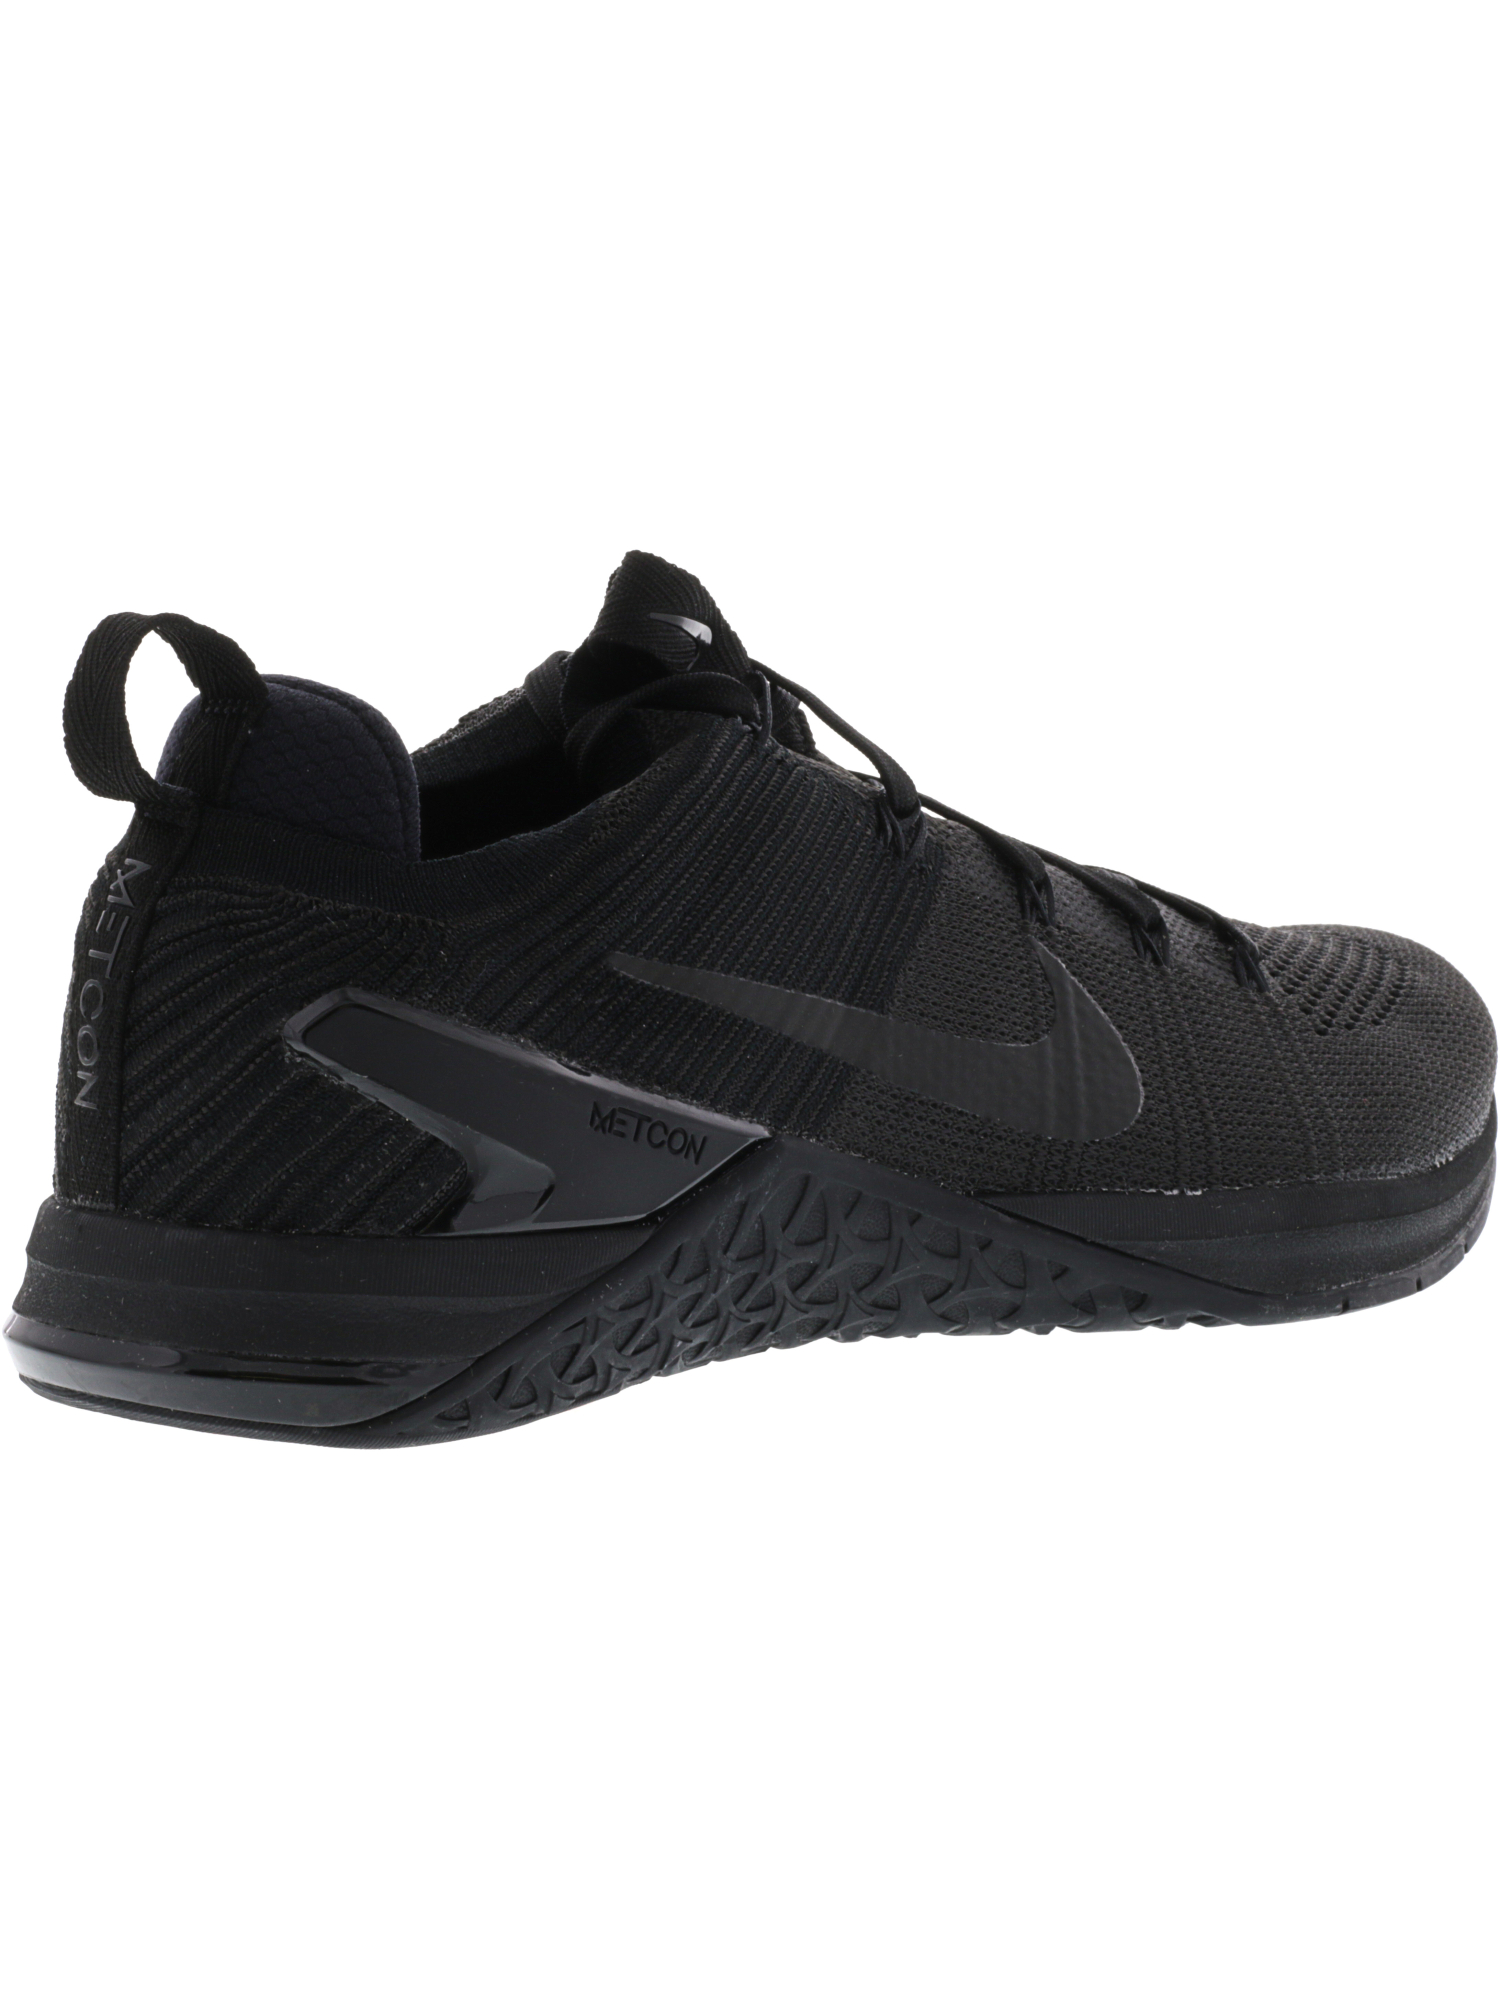 c65bfb92f6ed ... Nike Nike Nike Men s Metcon Dsx Flyknit 2 Ankle-High Cross Trainer Shoe  25cf06. Mens Nike Air Huarache ...